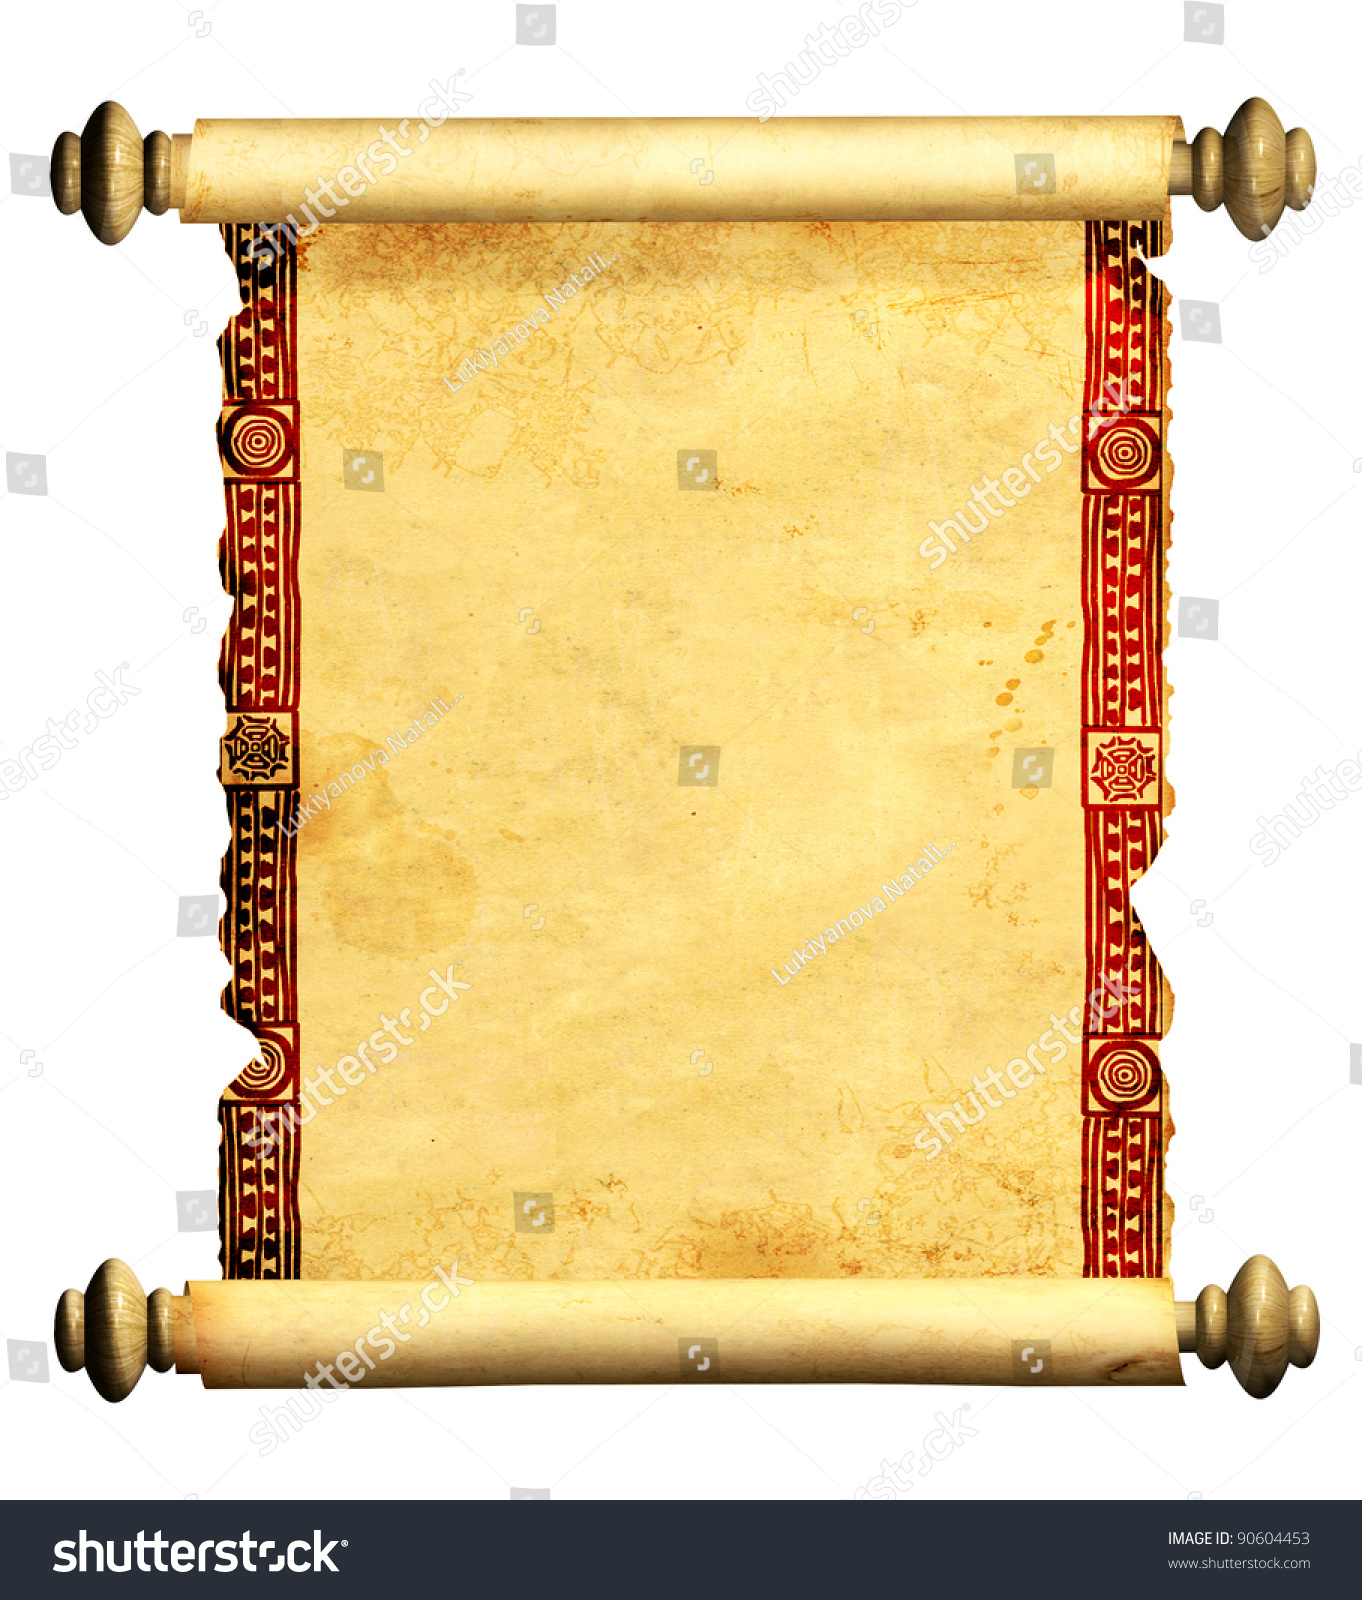 Scroll Old Parchment Object Isolated Over Stock ...